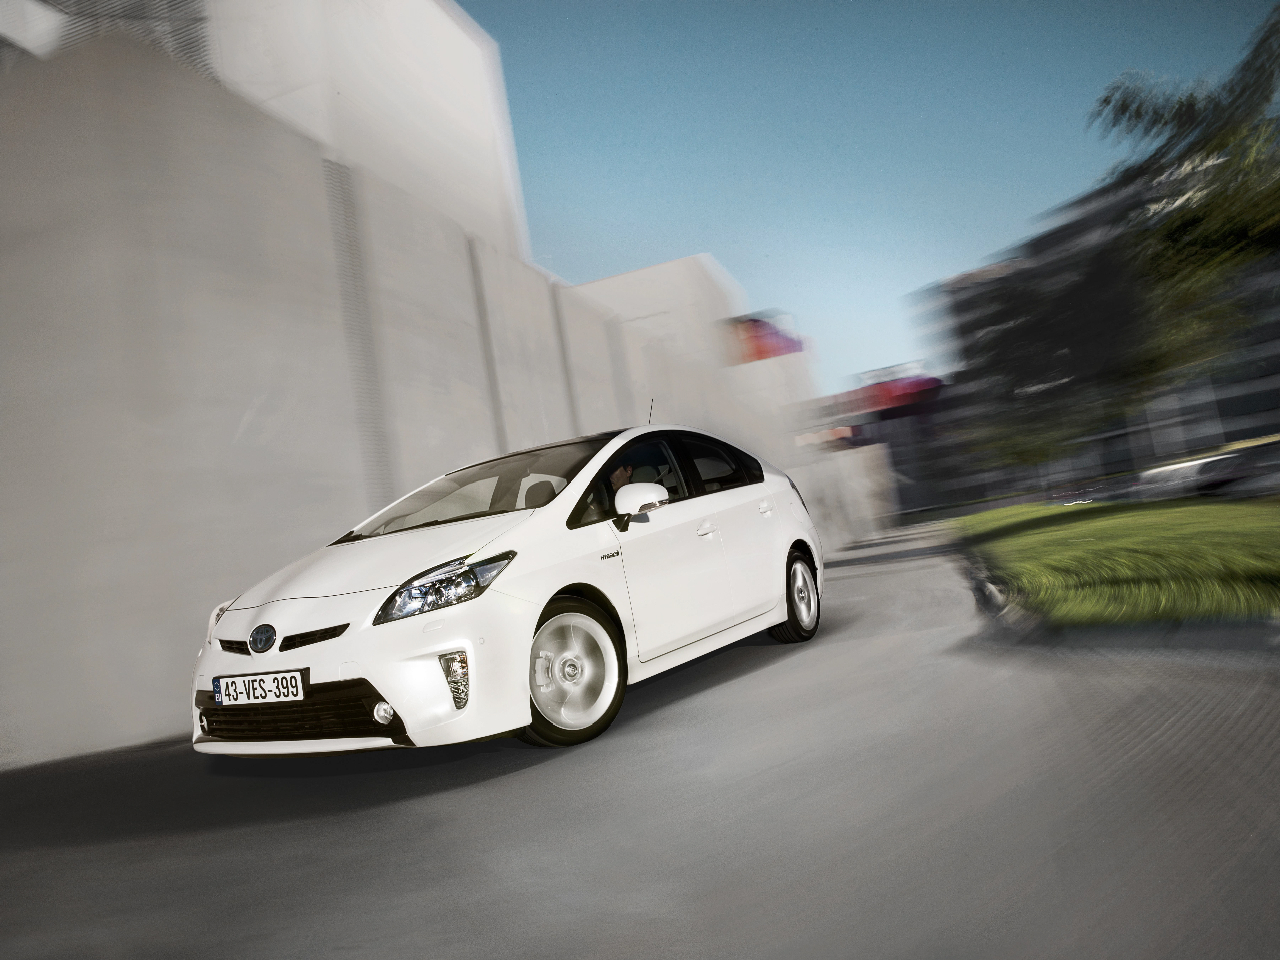 Car Buyers Guide Hybrid Maintenance Doesnt Have Nz Herald 2010 Toyota Prius Battery